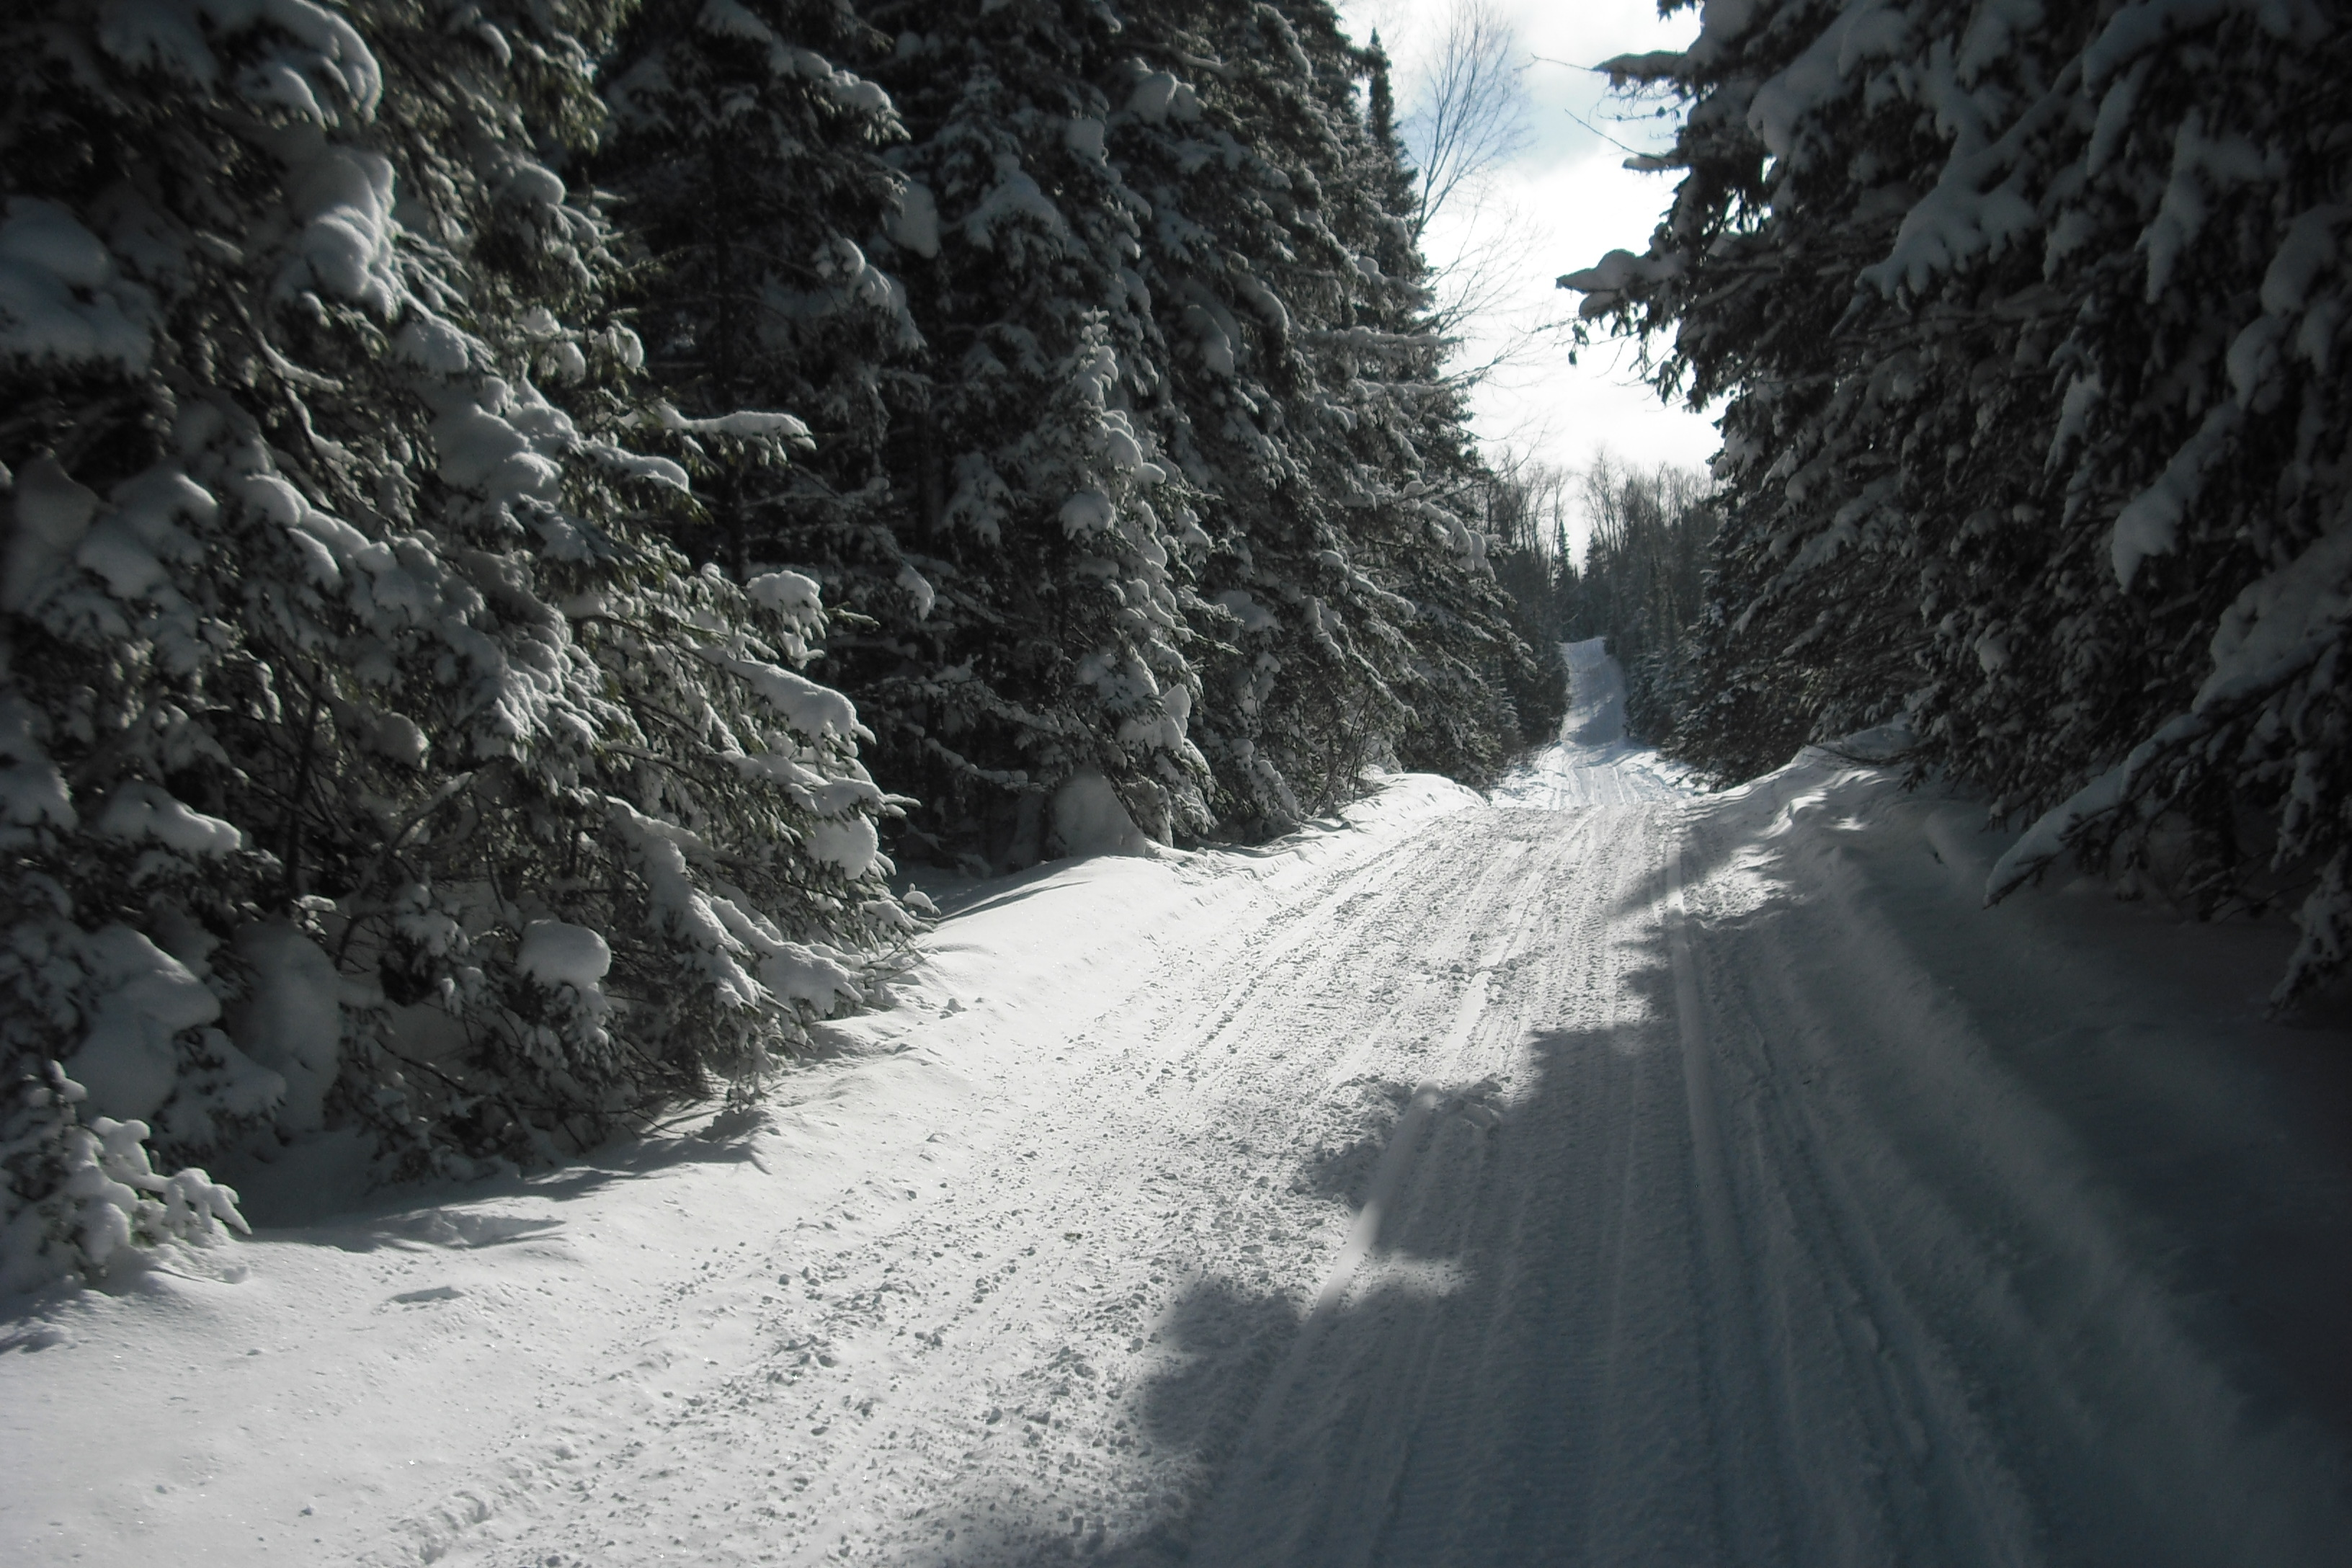 Picturesque  scenes like this were made possible by the work done by visionaries of snowmobiling's early days